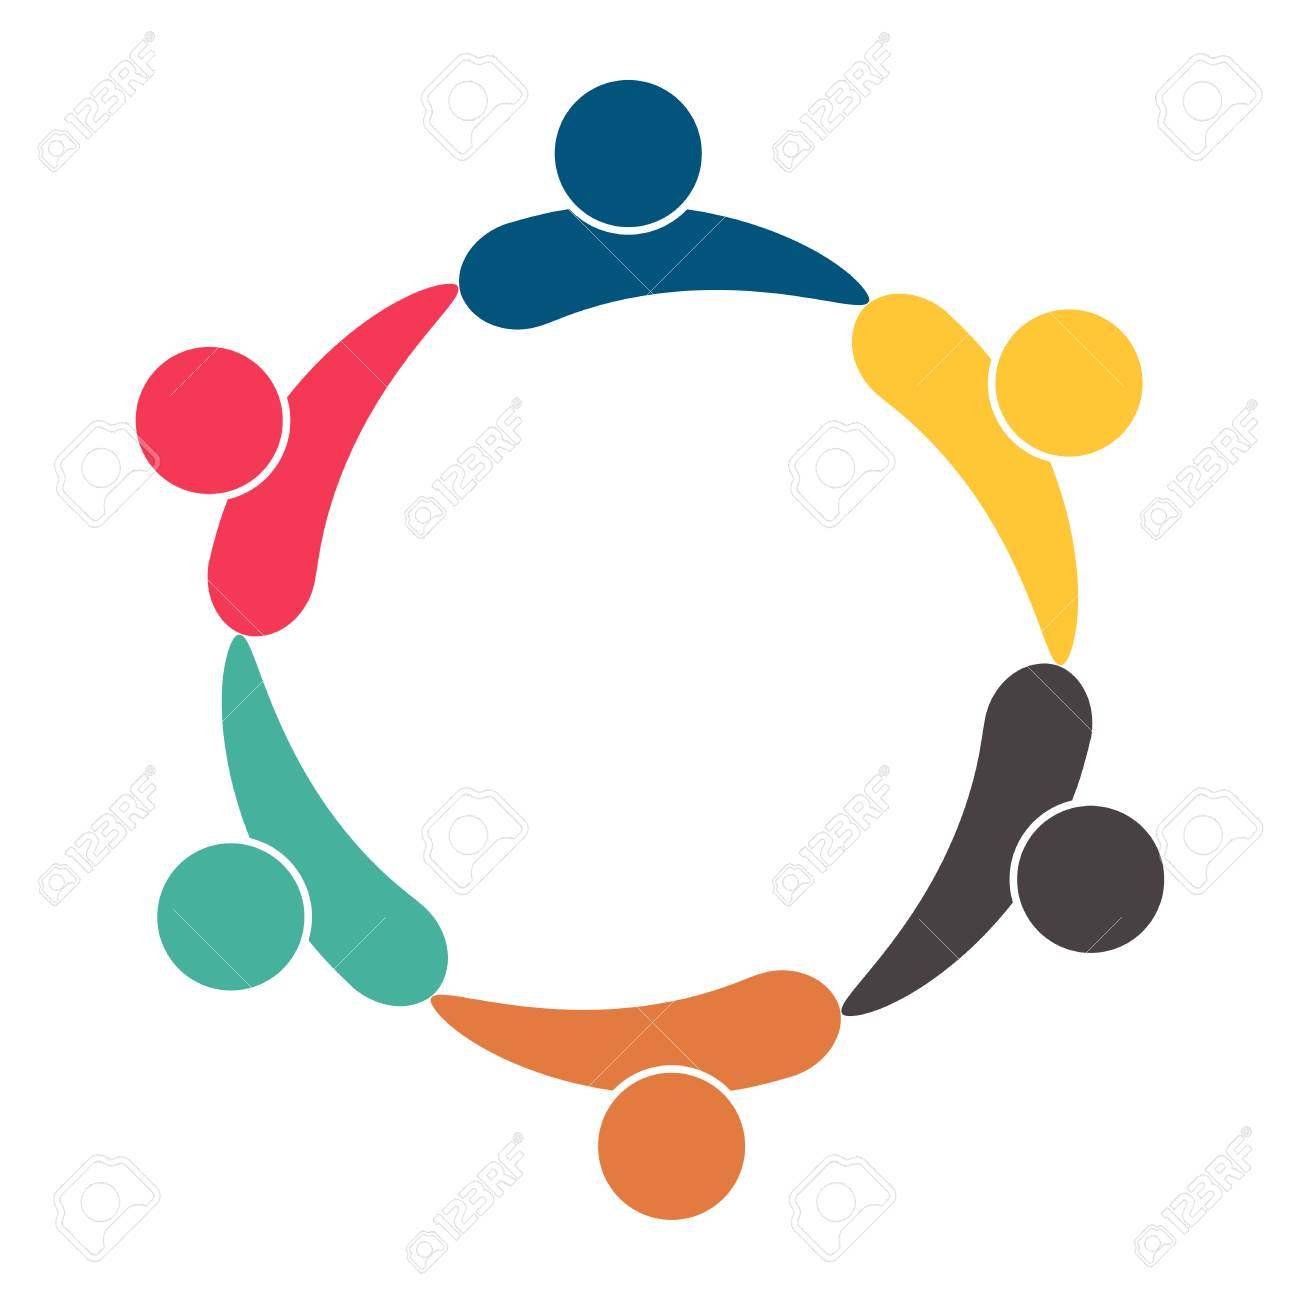 Meeting teamwork room people logo. Group of six persons in circle. Vector illustration - 121359799